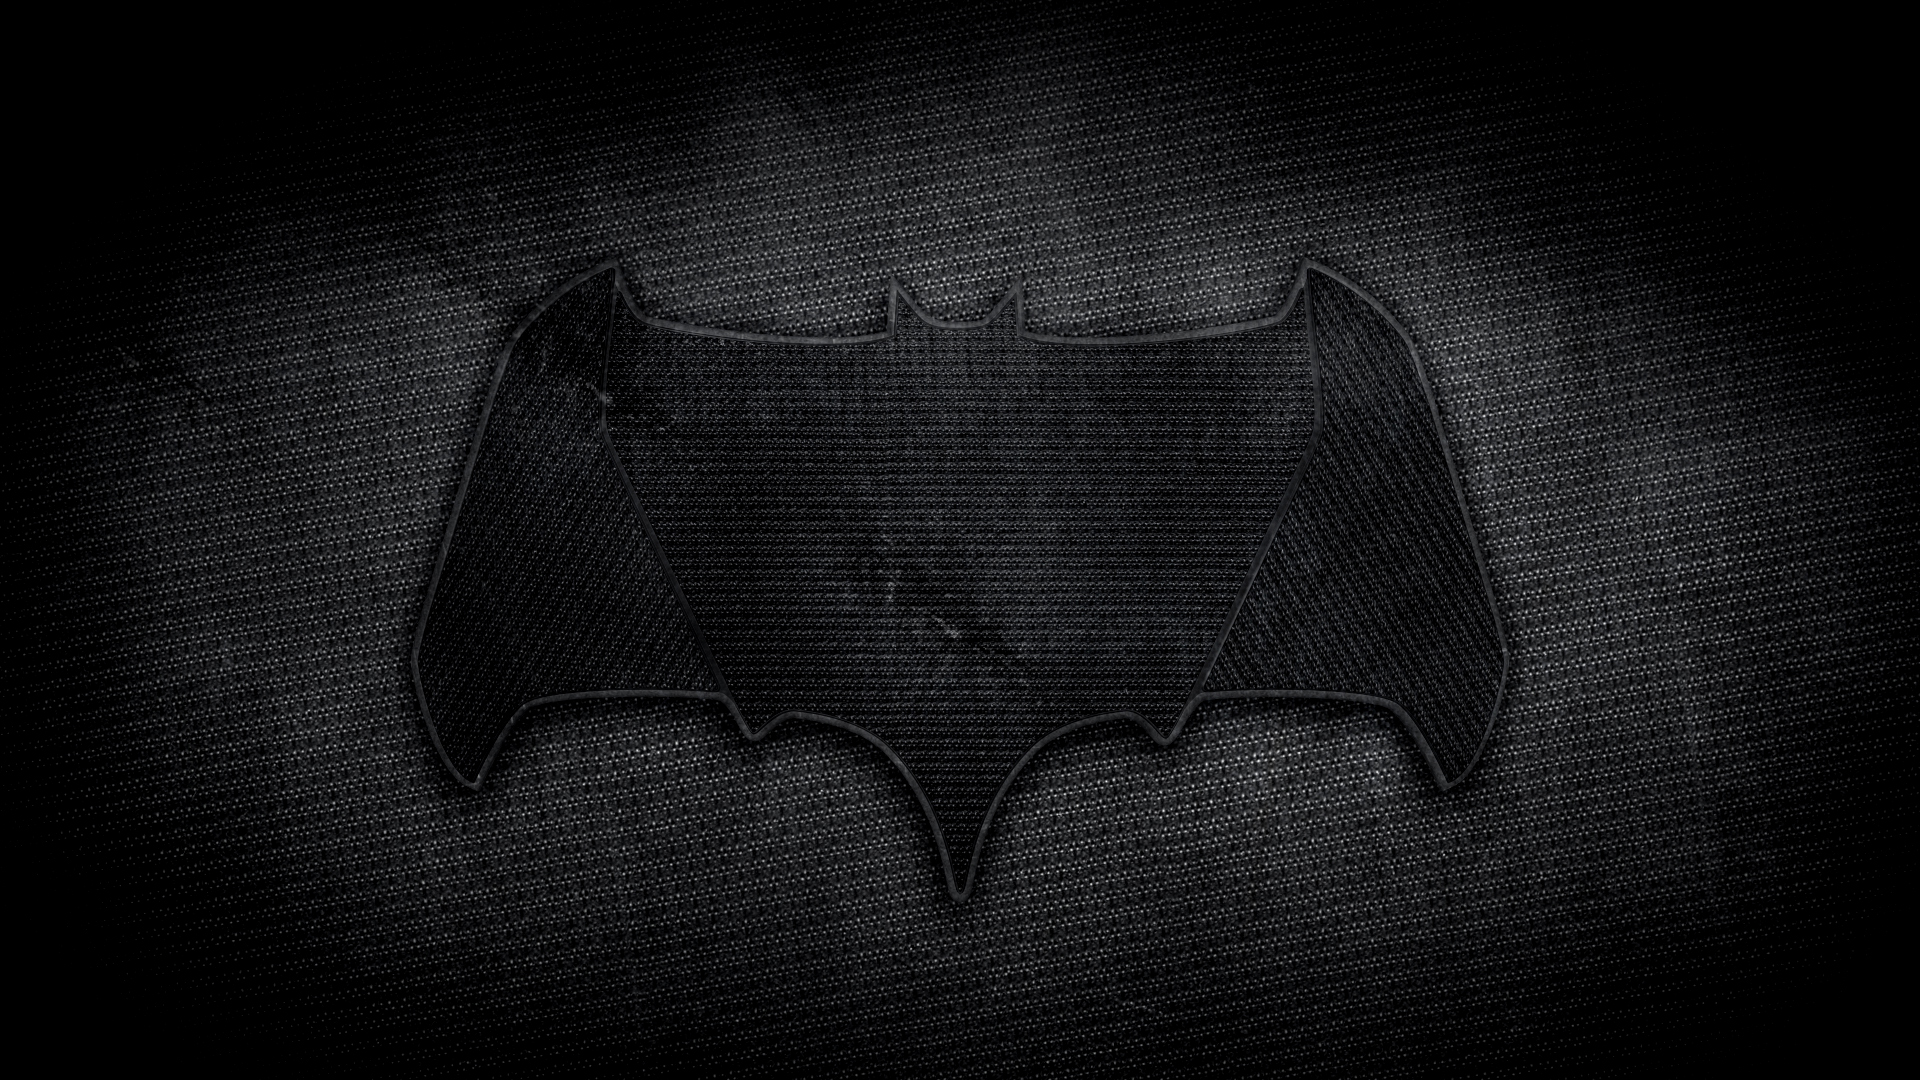 batman logo in batman vs superman dawn of justice movie 2016 1920x1080